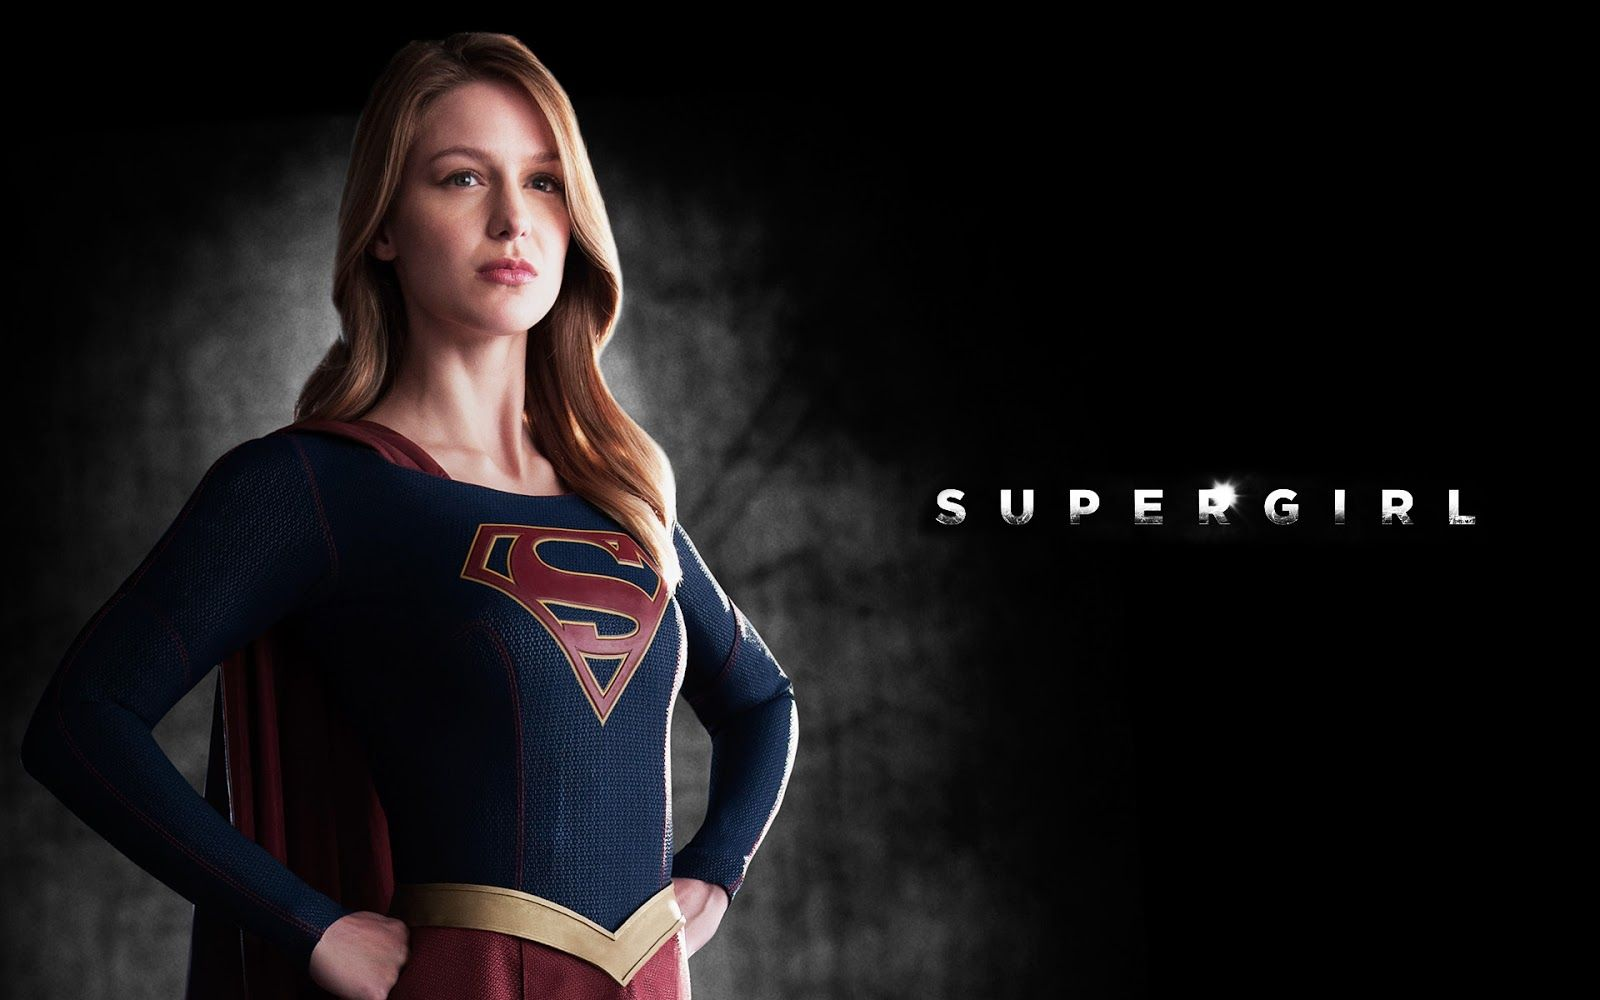 Supergirl Wallpaper HD 1920×1080 Supergirl Pictures Wallpapers (45 Wallpapers) | Adorable Wallpapers